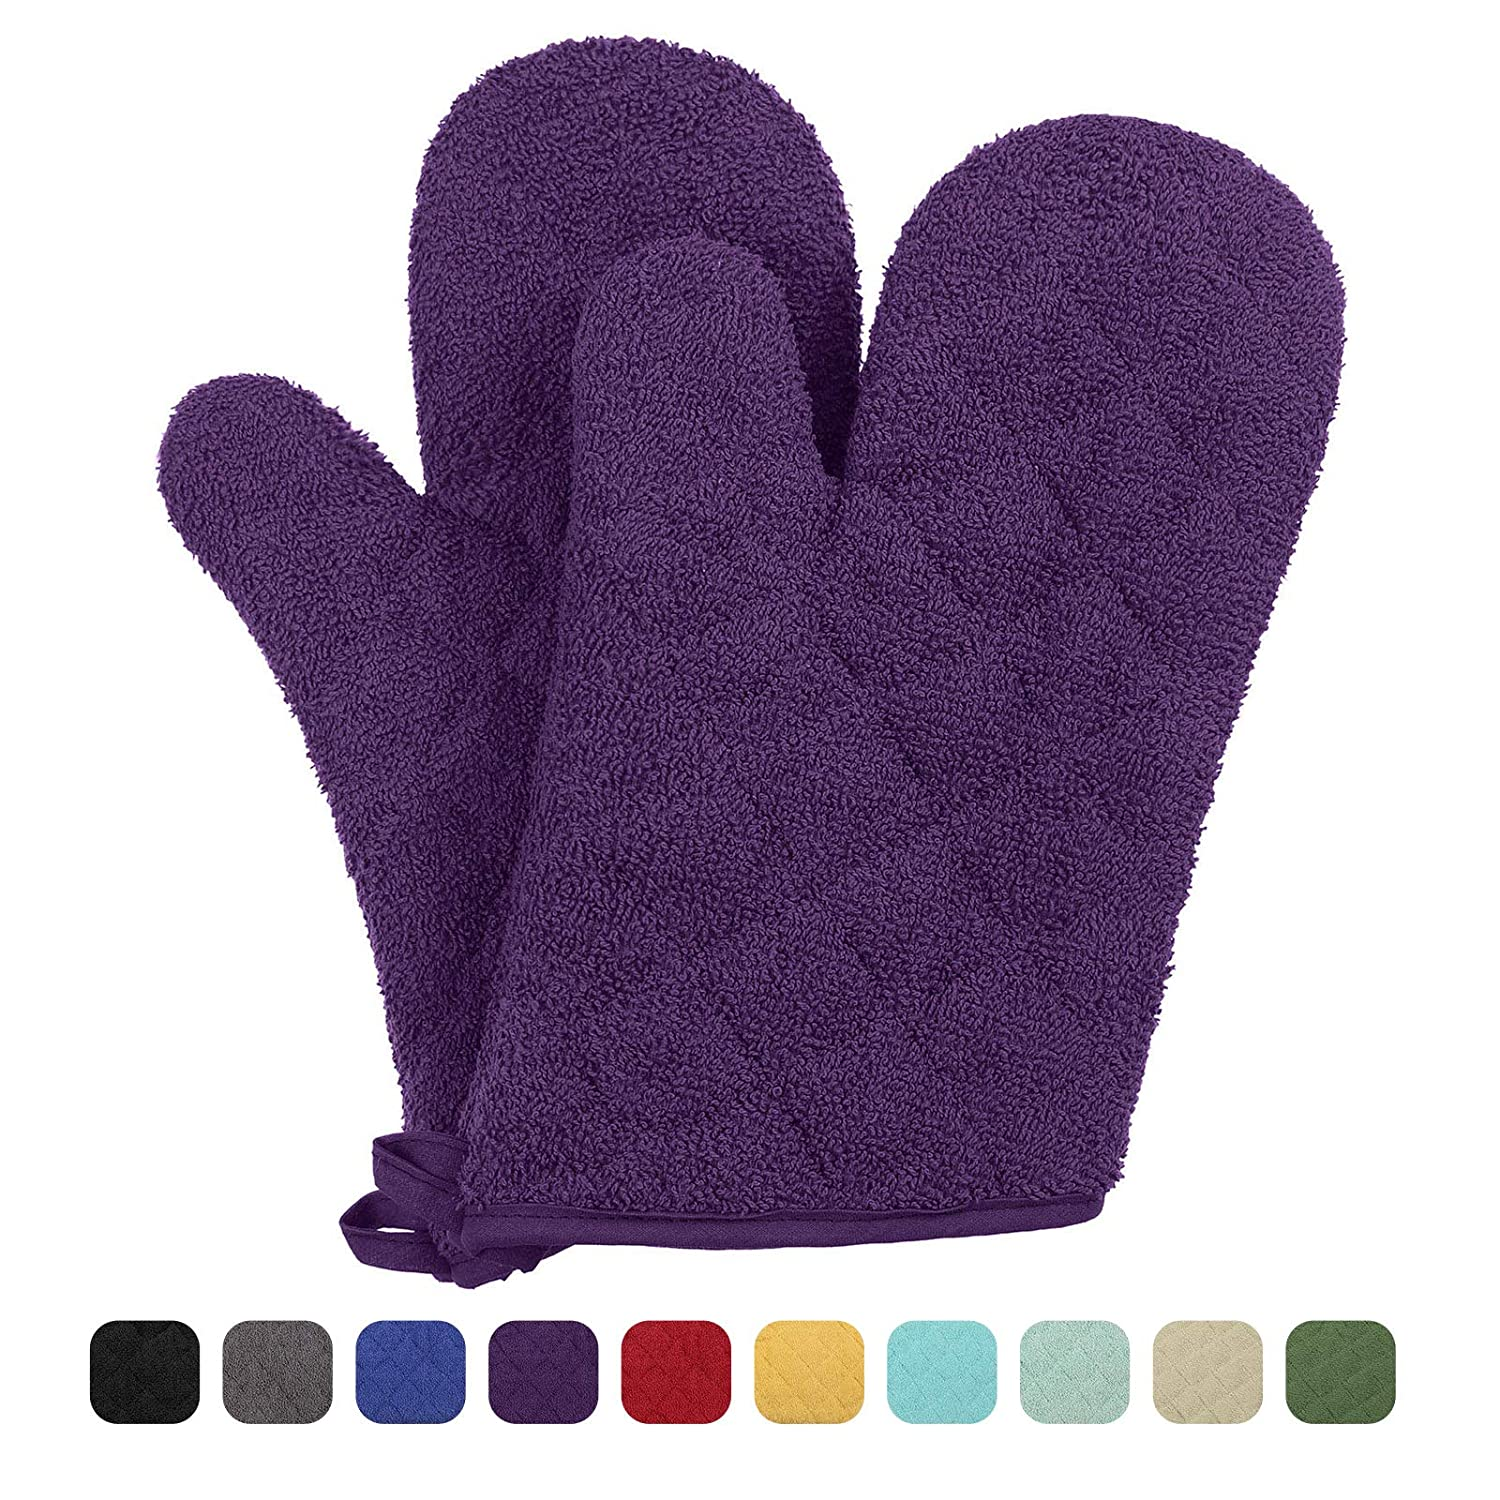 VEEYOO 100% Cotton Oven Mitts Kitchen Oven Gloves Heat Resistant Terry Oven Mitts 7x12, Light Purple